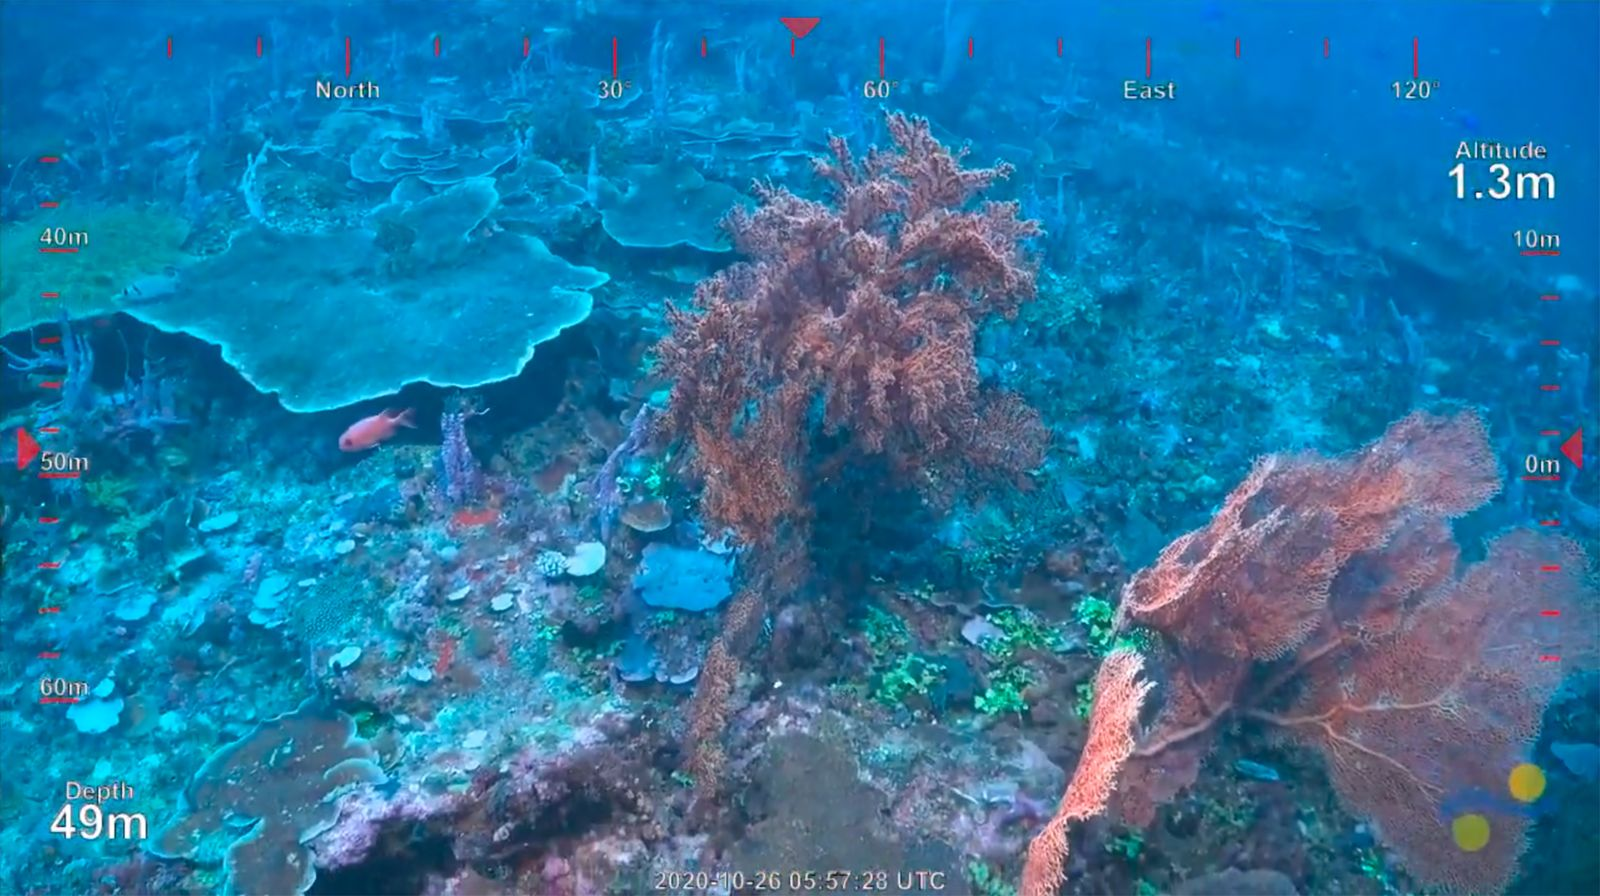 ROV Dive 401 - Newly Discovered 500m Tall Reef